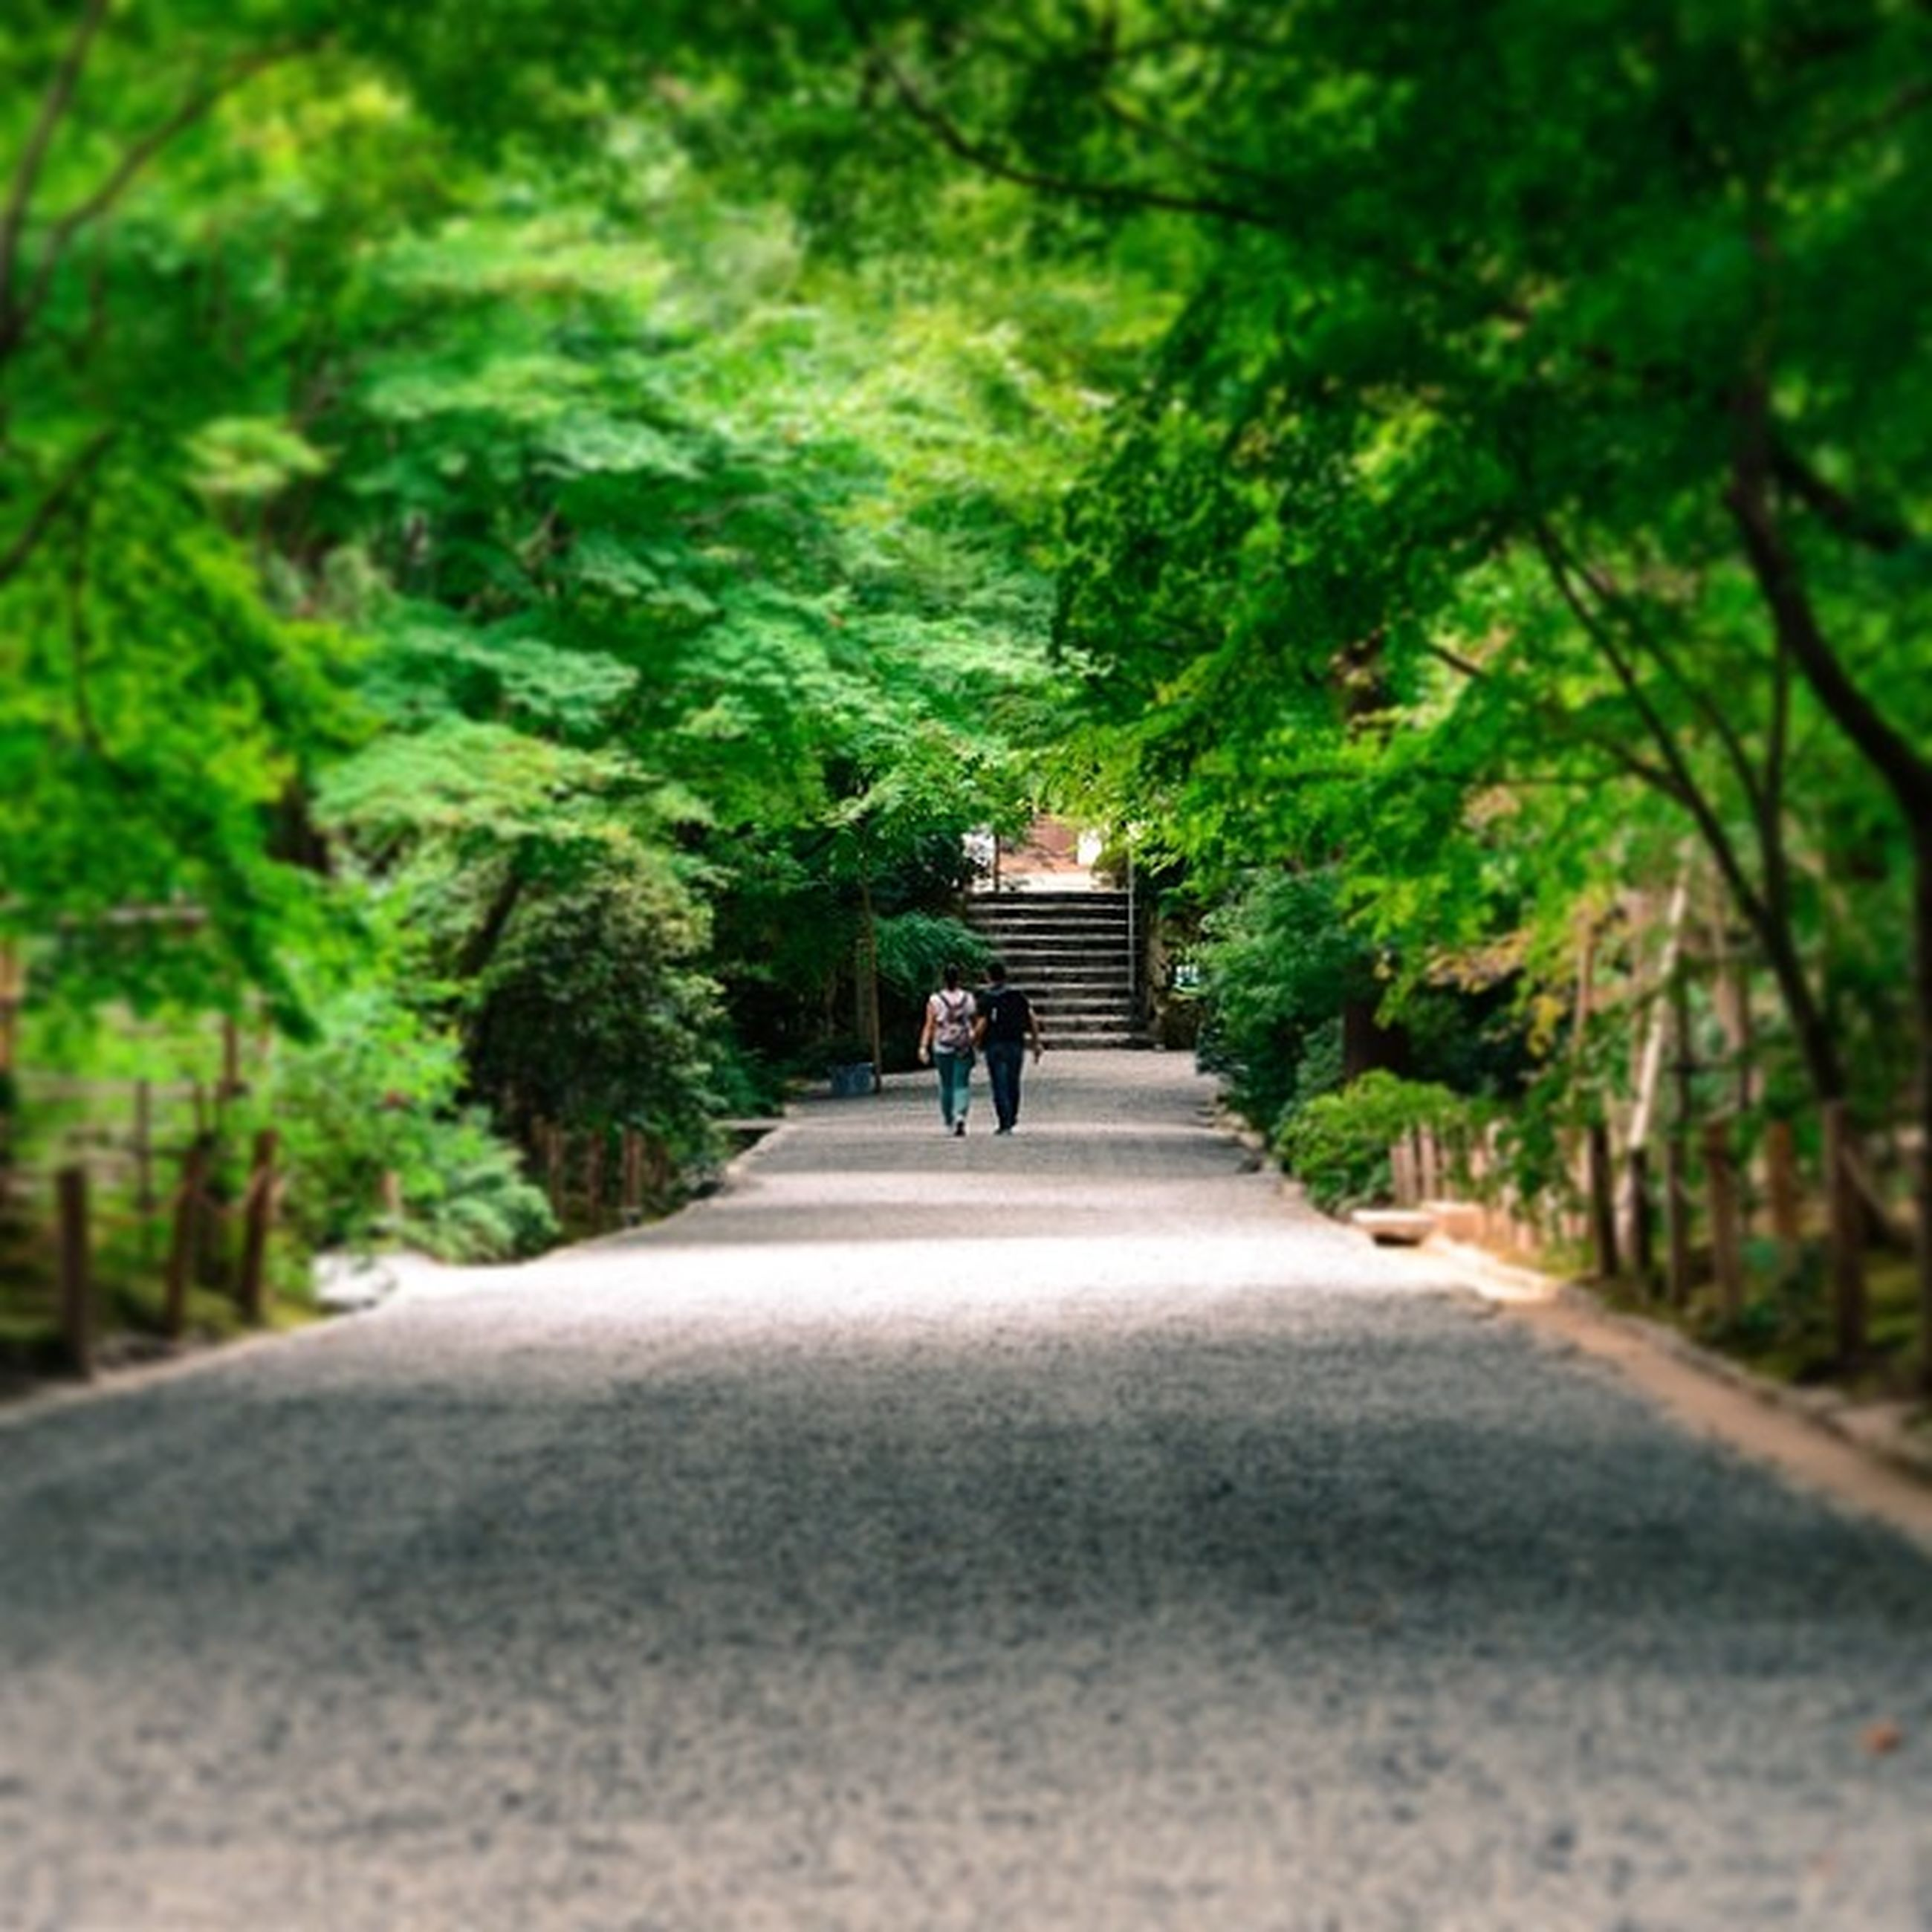 tree, the way forward, transportation, walking, rear view, full length, road, men, lifestyles, leisure activity, diminishing perspective, growth, on the move, street, person, bicycle, green color, day